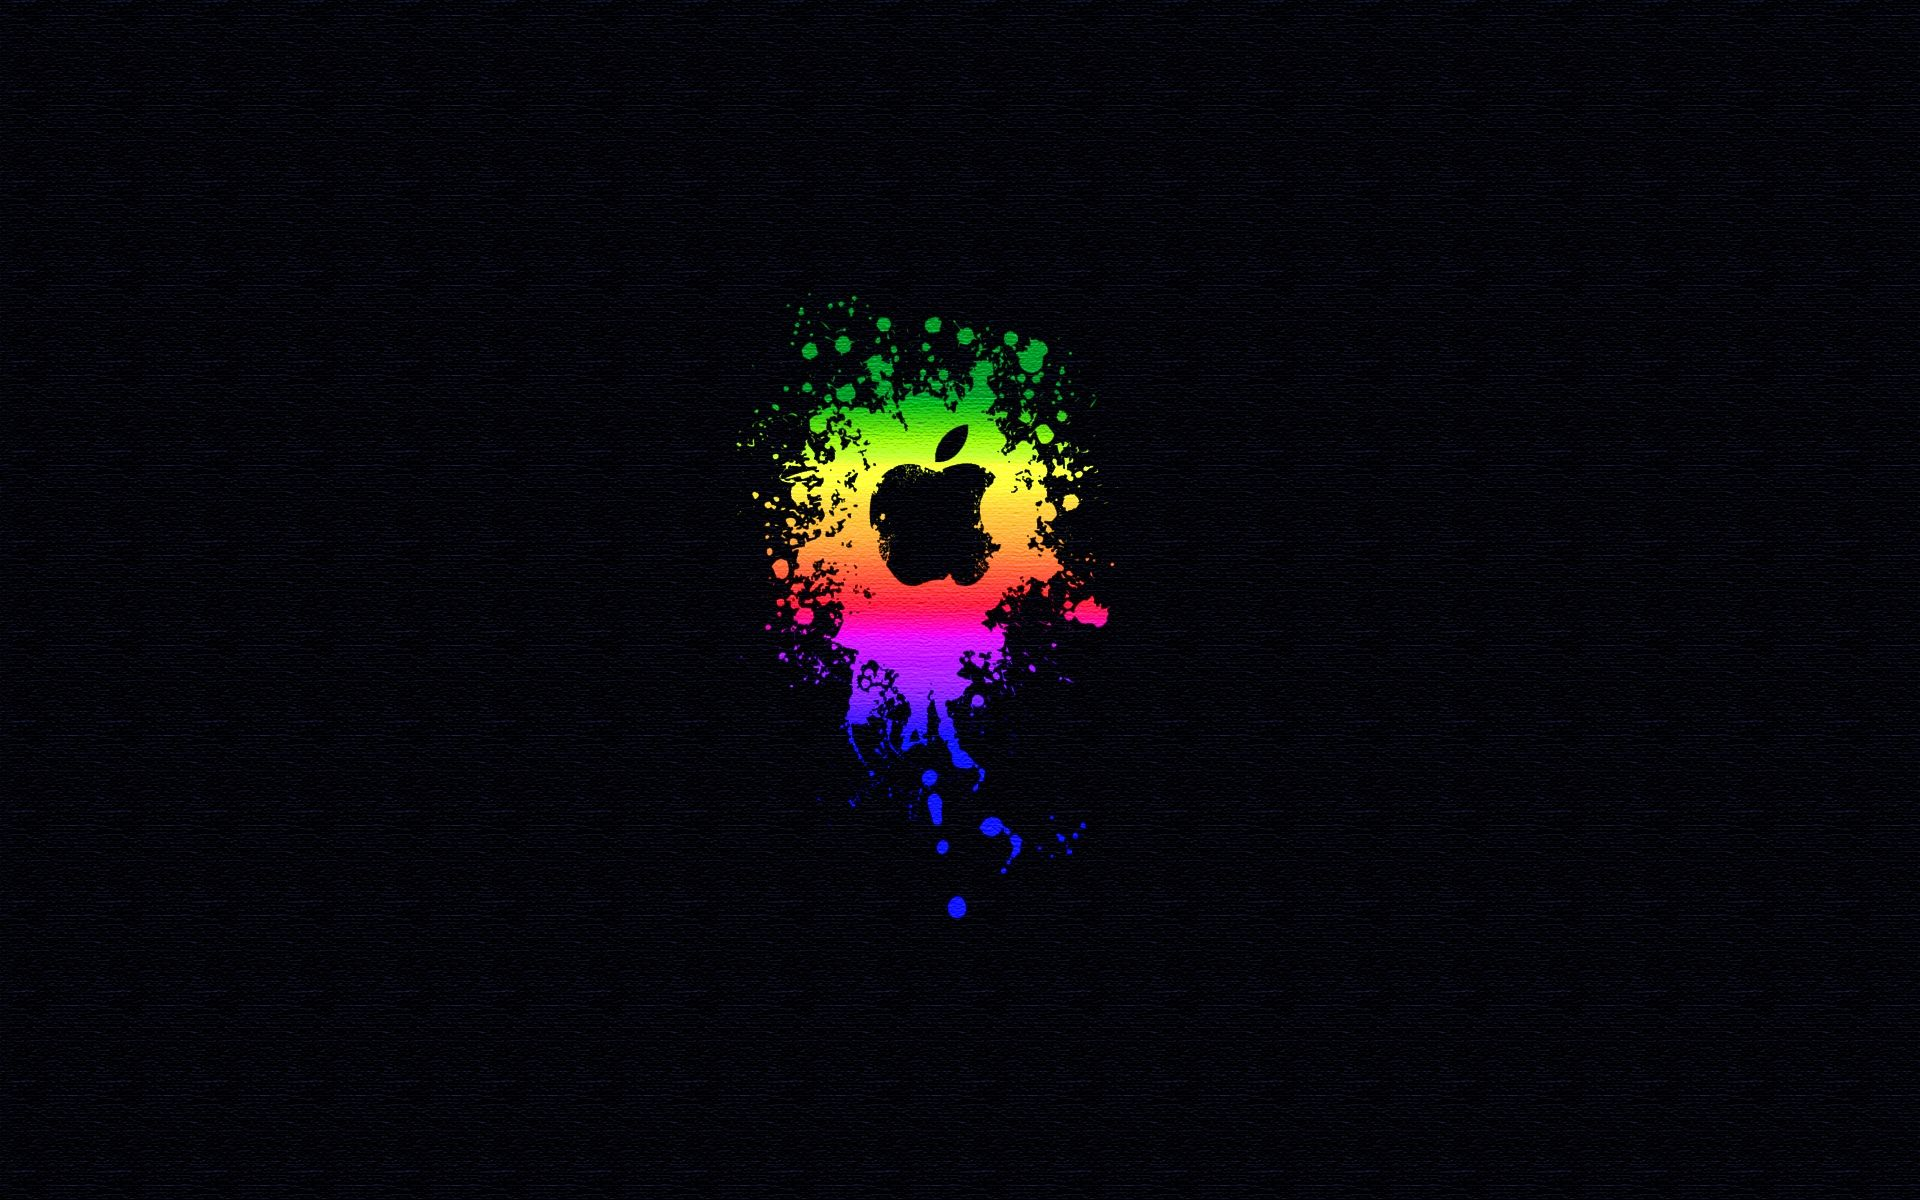 Rainbow Apple Logo Color Pop In 2019 Apple Ipad Wallpaper